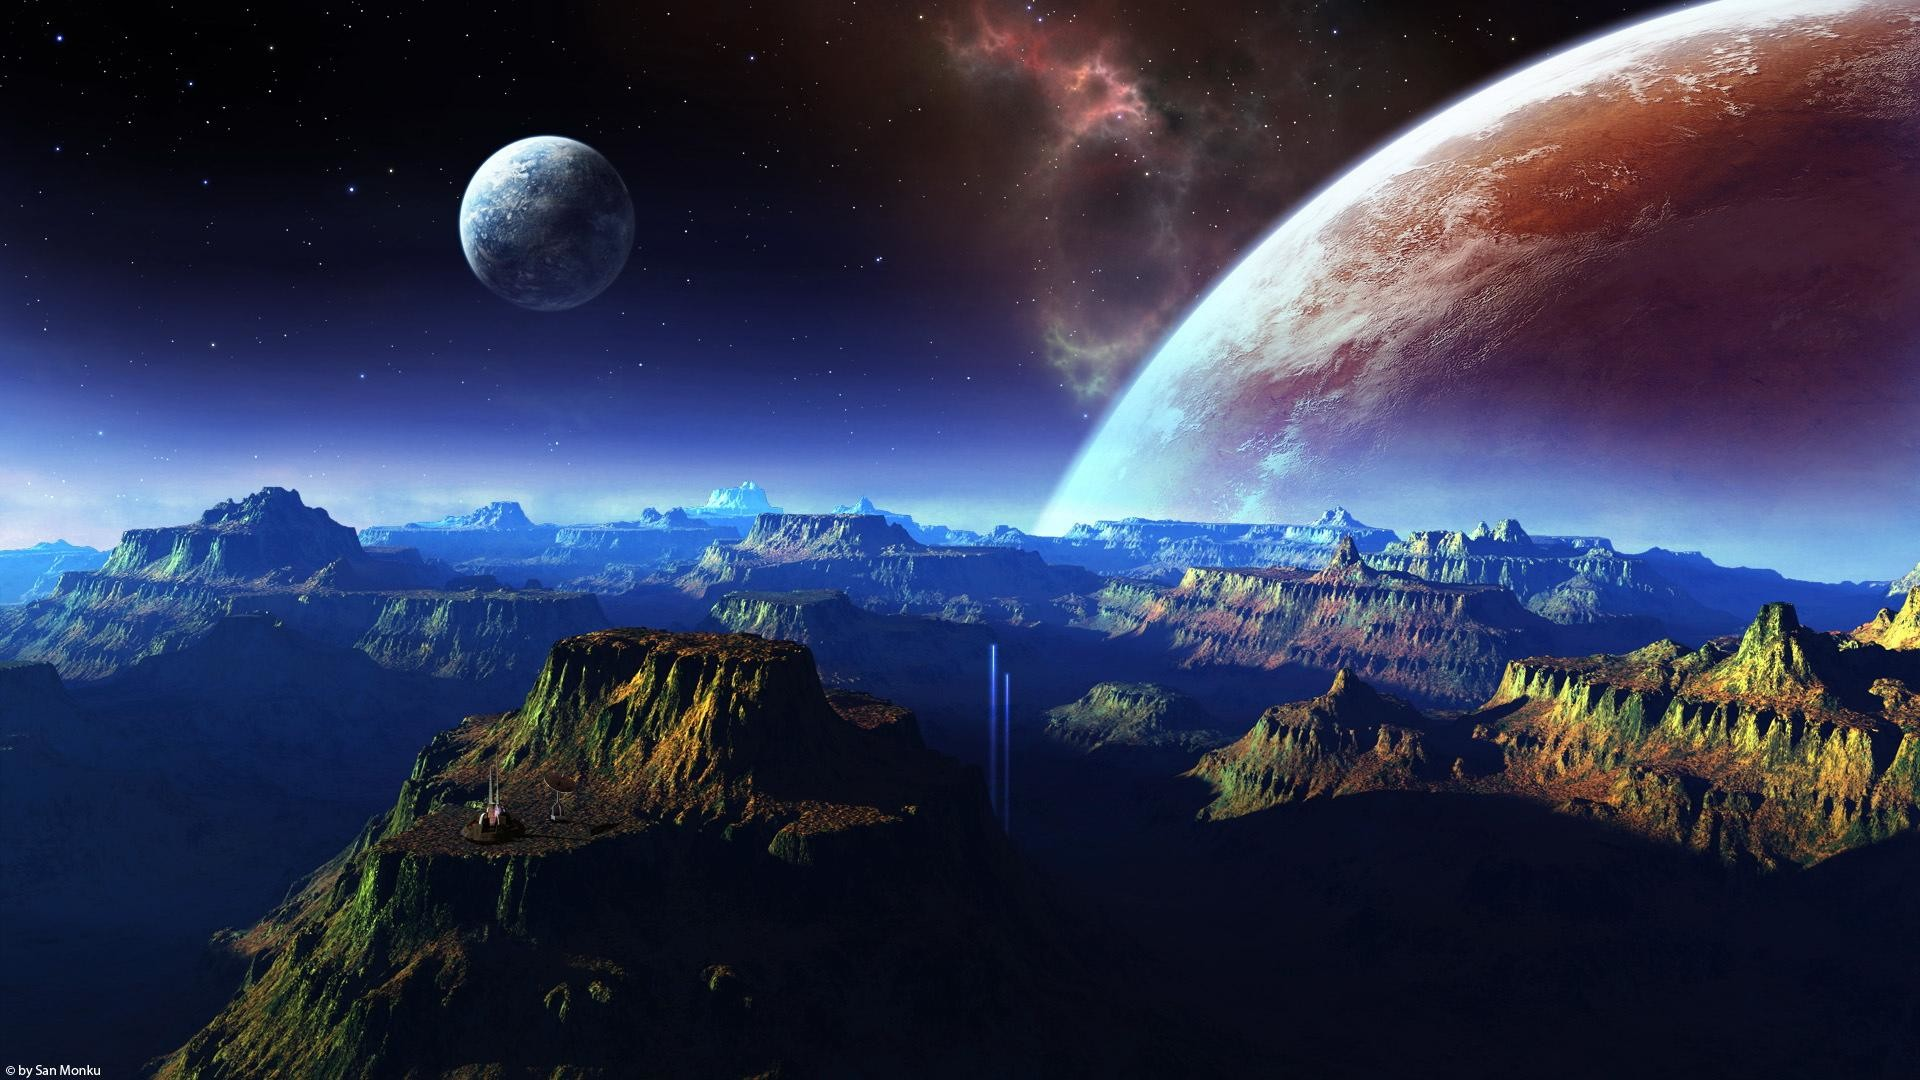 1920x1080 Earth Space HD Wallpaper 1920X1080 (page 3) - Pics about space